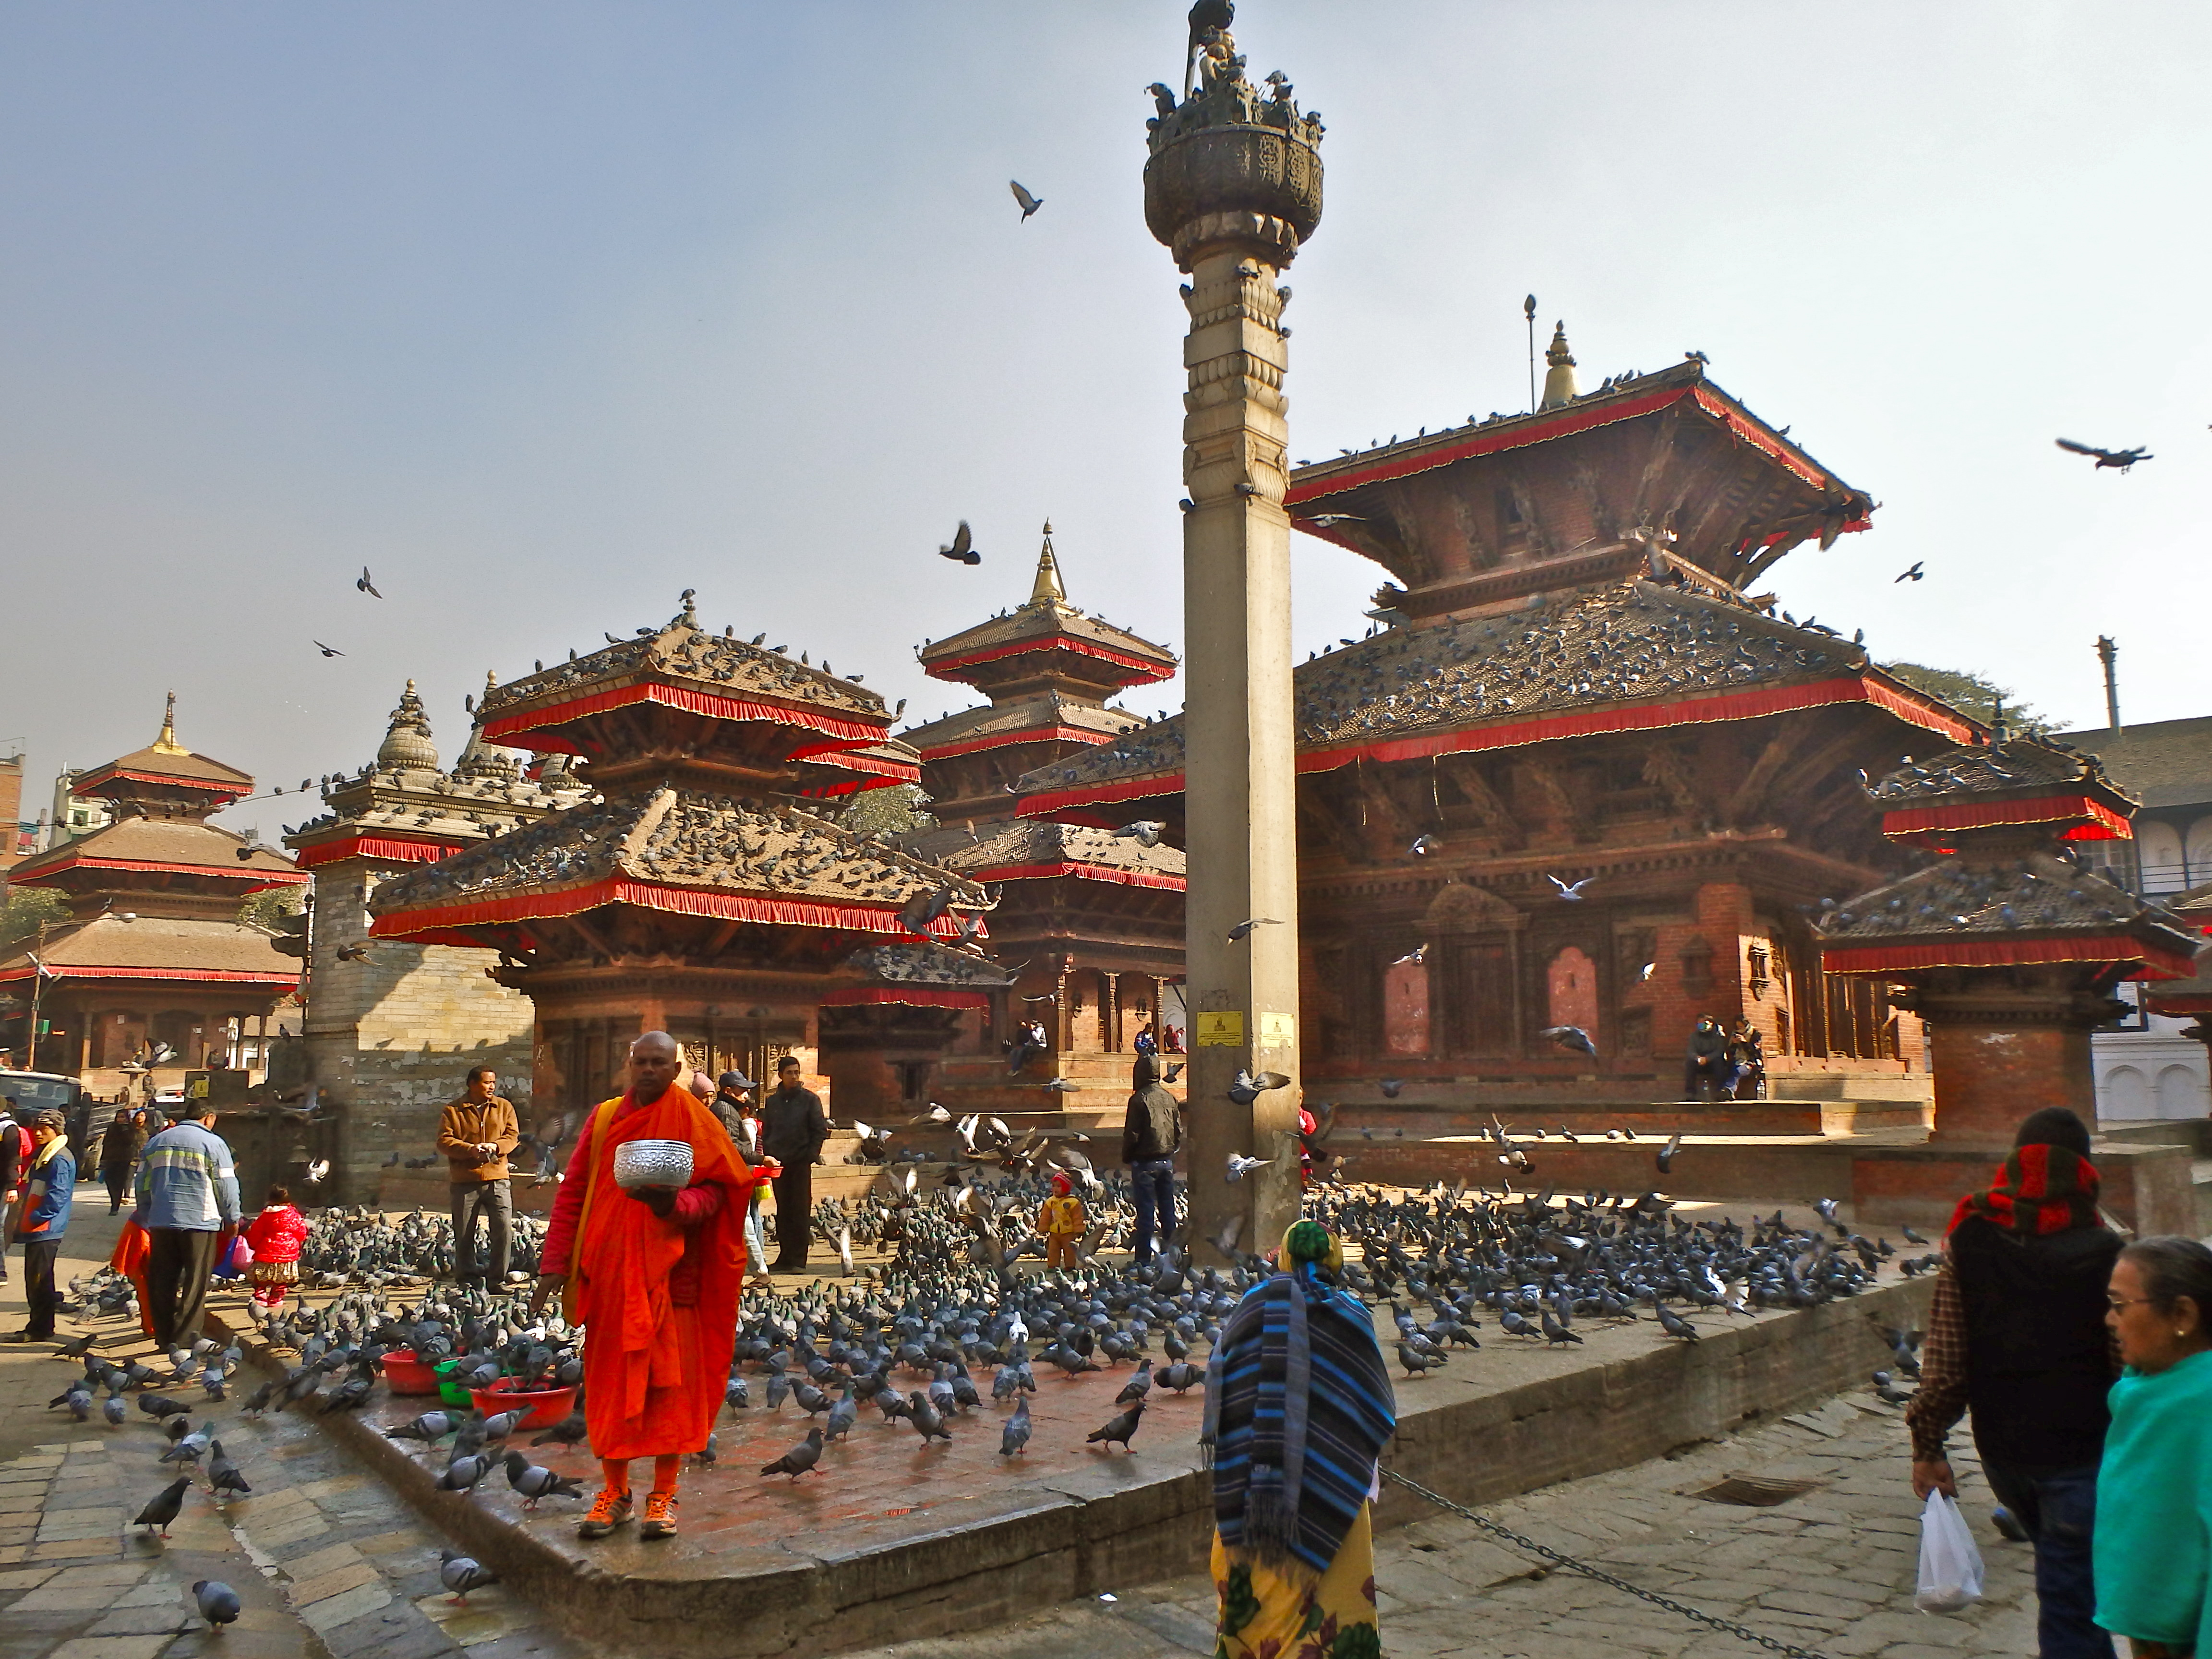 introduction to kathmandu durbar square Kathmandu is the capital of nepal and the largest city in the country it has a rich, nearly 2000 years old, history durbar square translates into english as court square the durbar square of kathmandu is located in the old city and is home to over 50 temples check out some of the most popular.